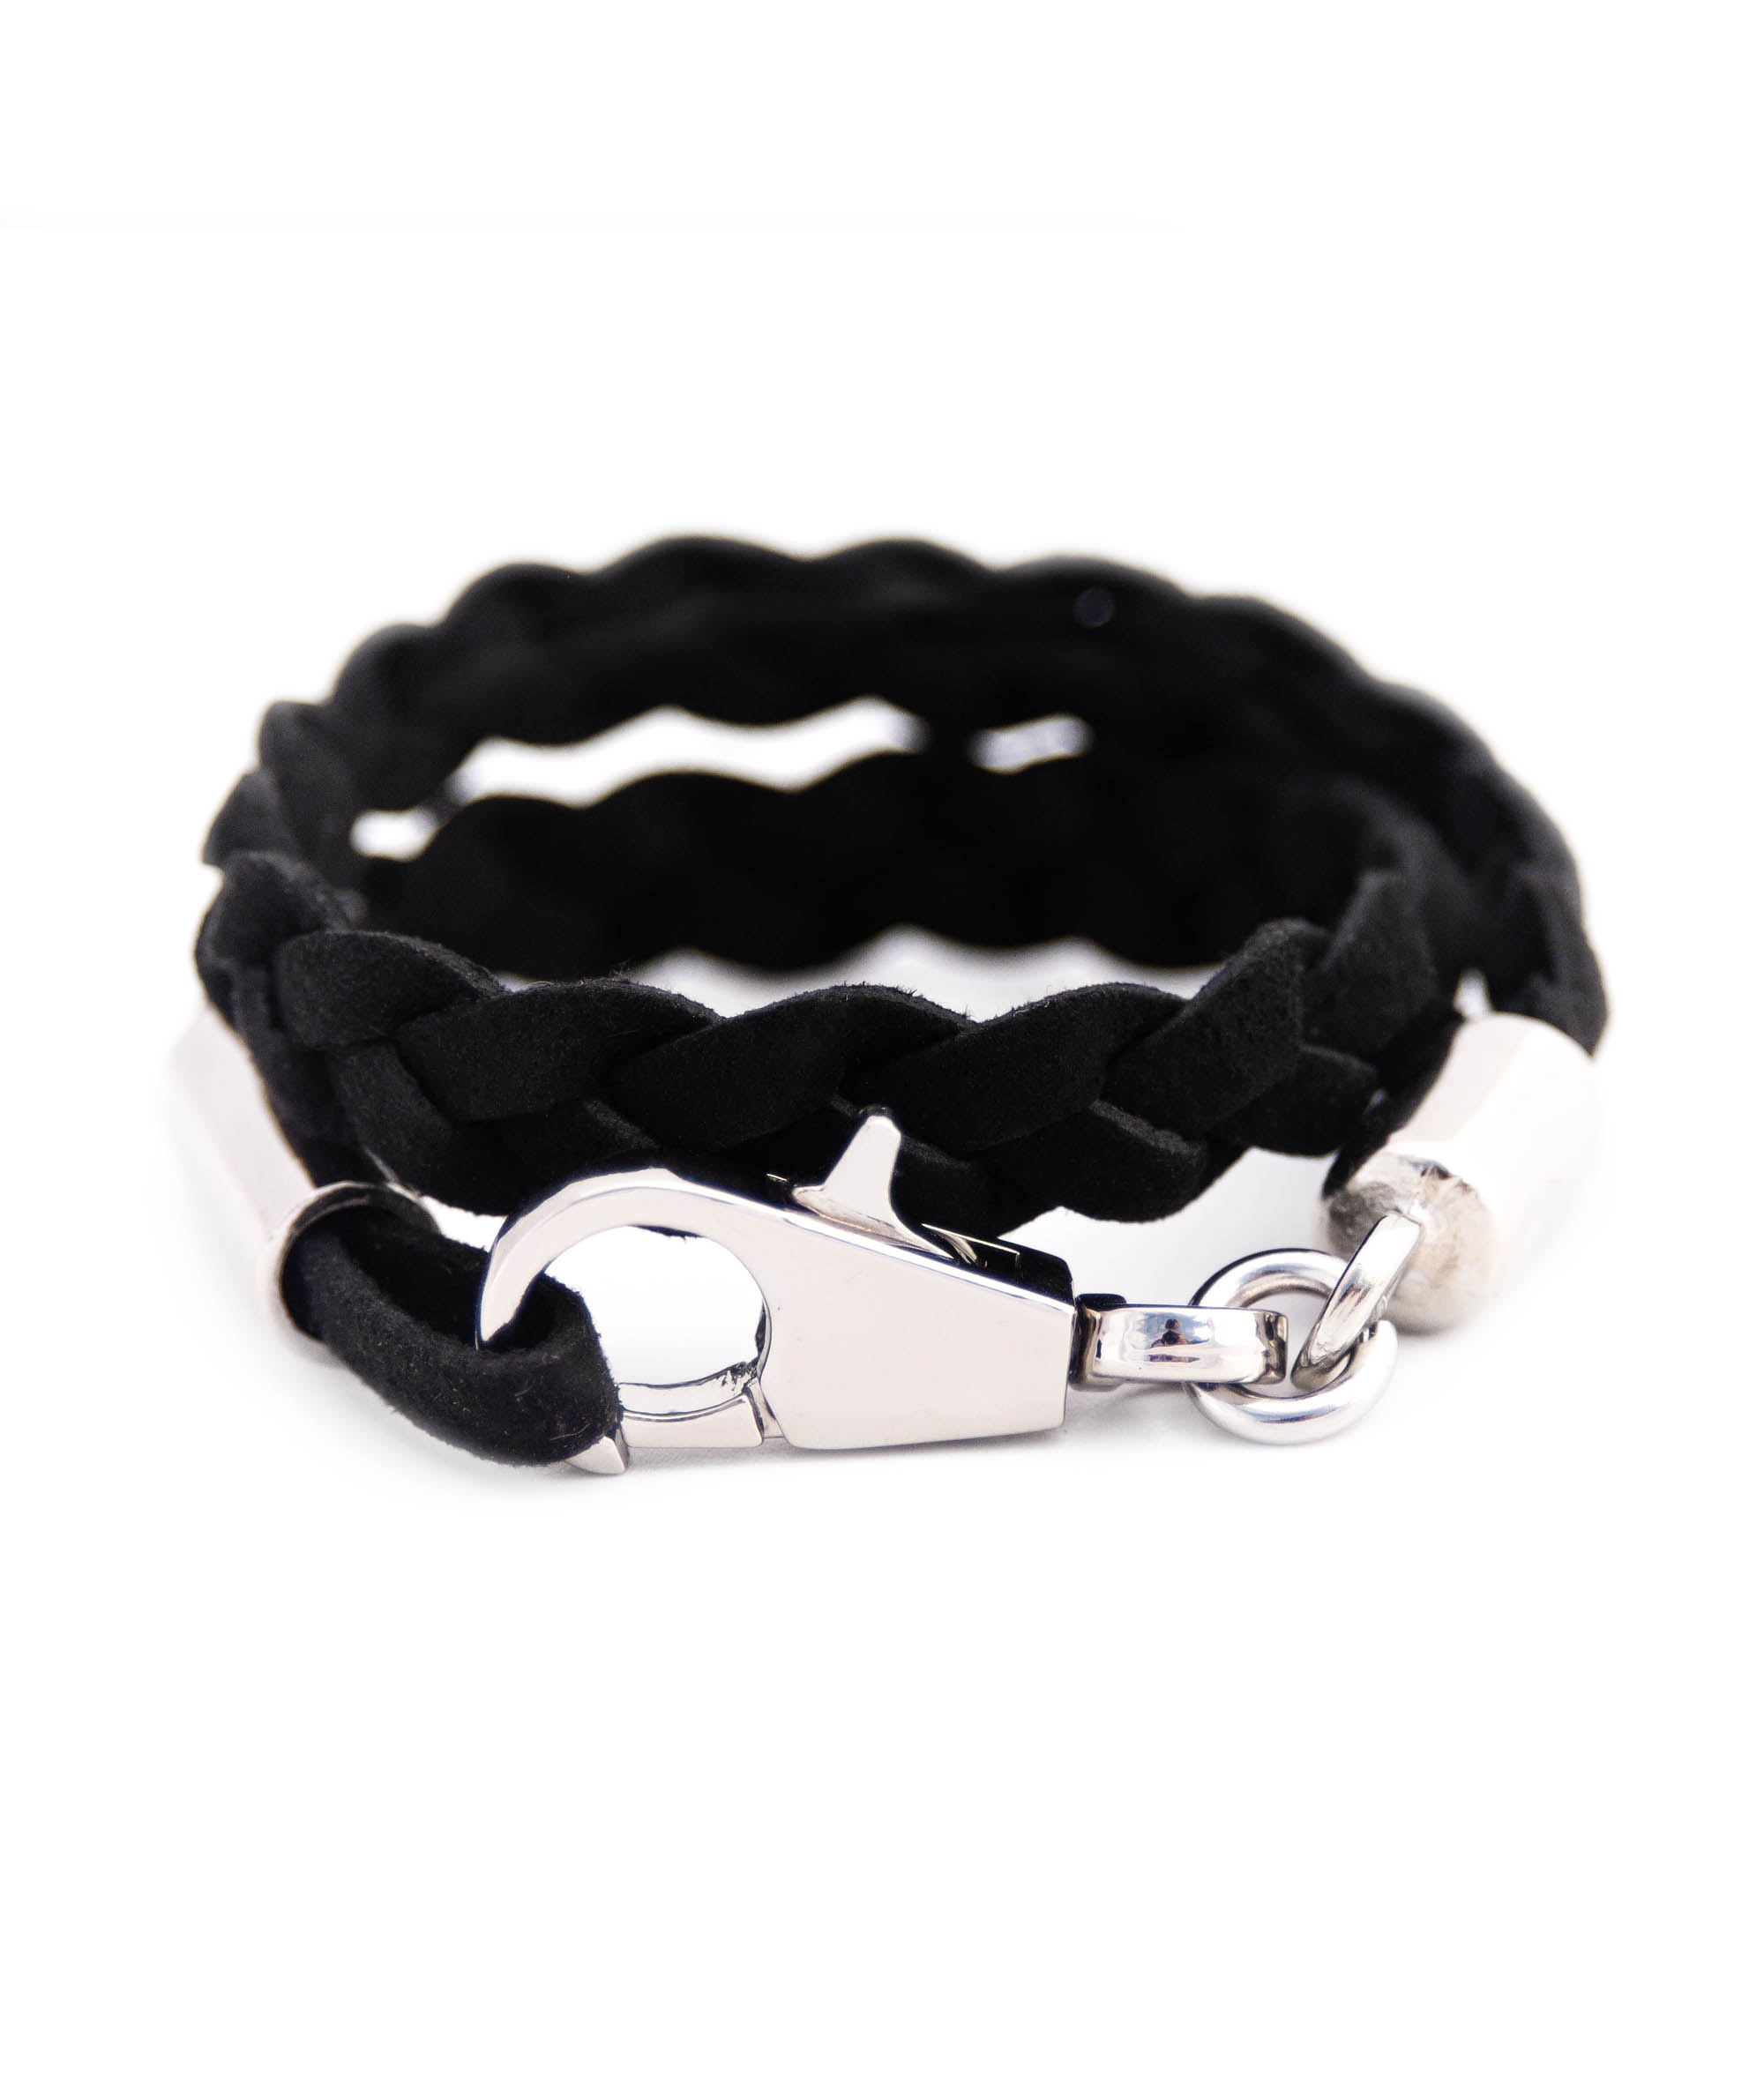 Black Bracelet for Men